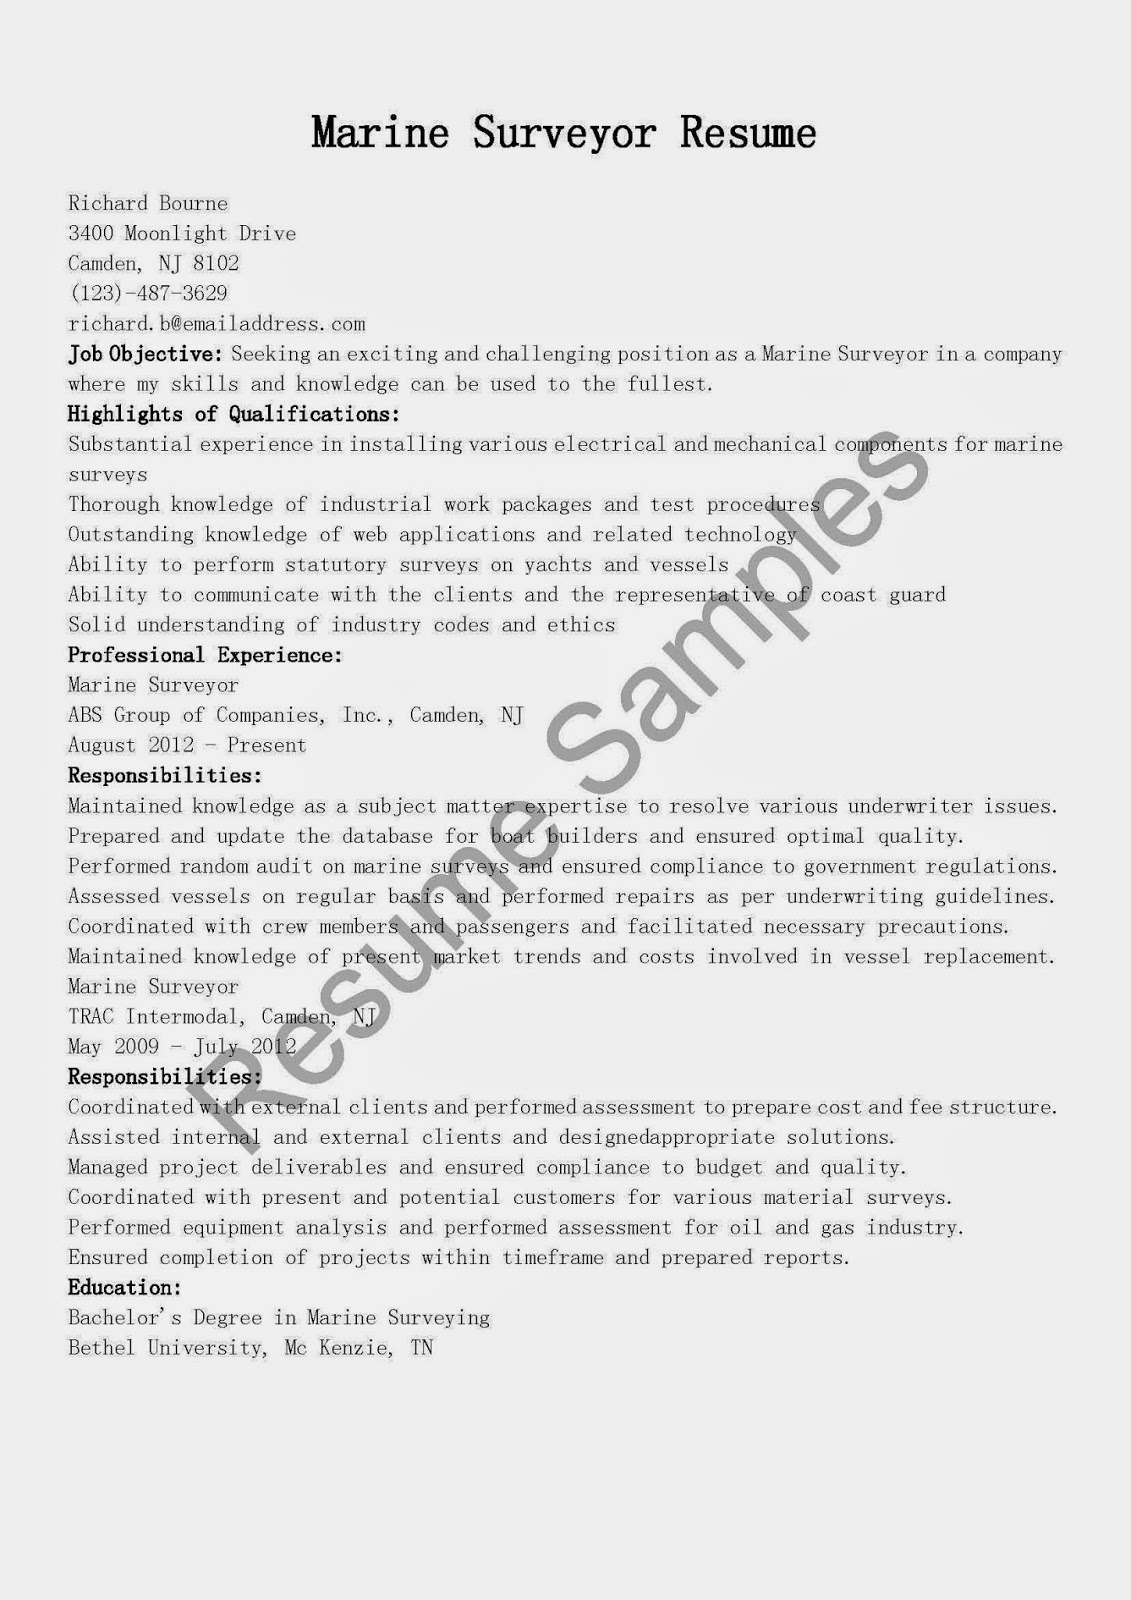 marine survey template - resume samples marine surveyor resume sample